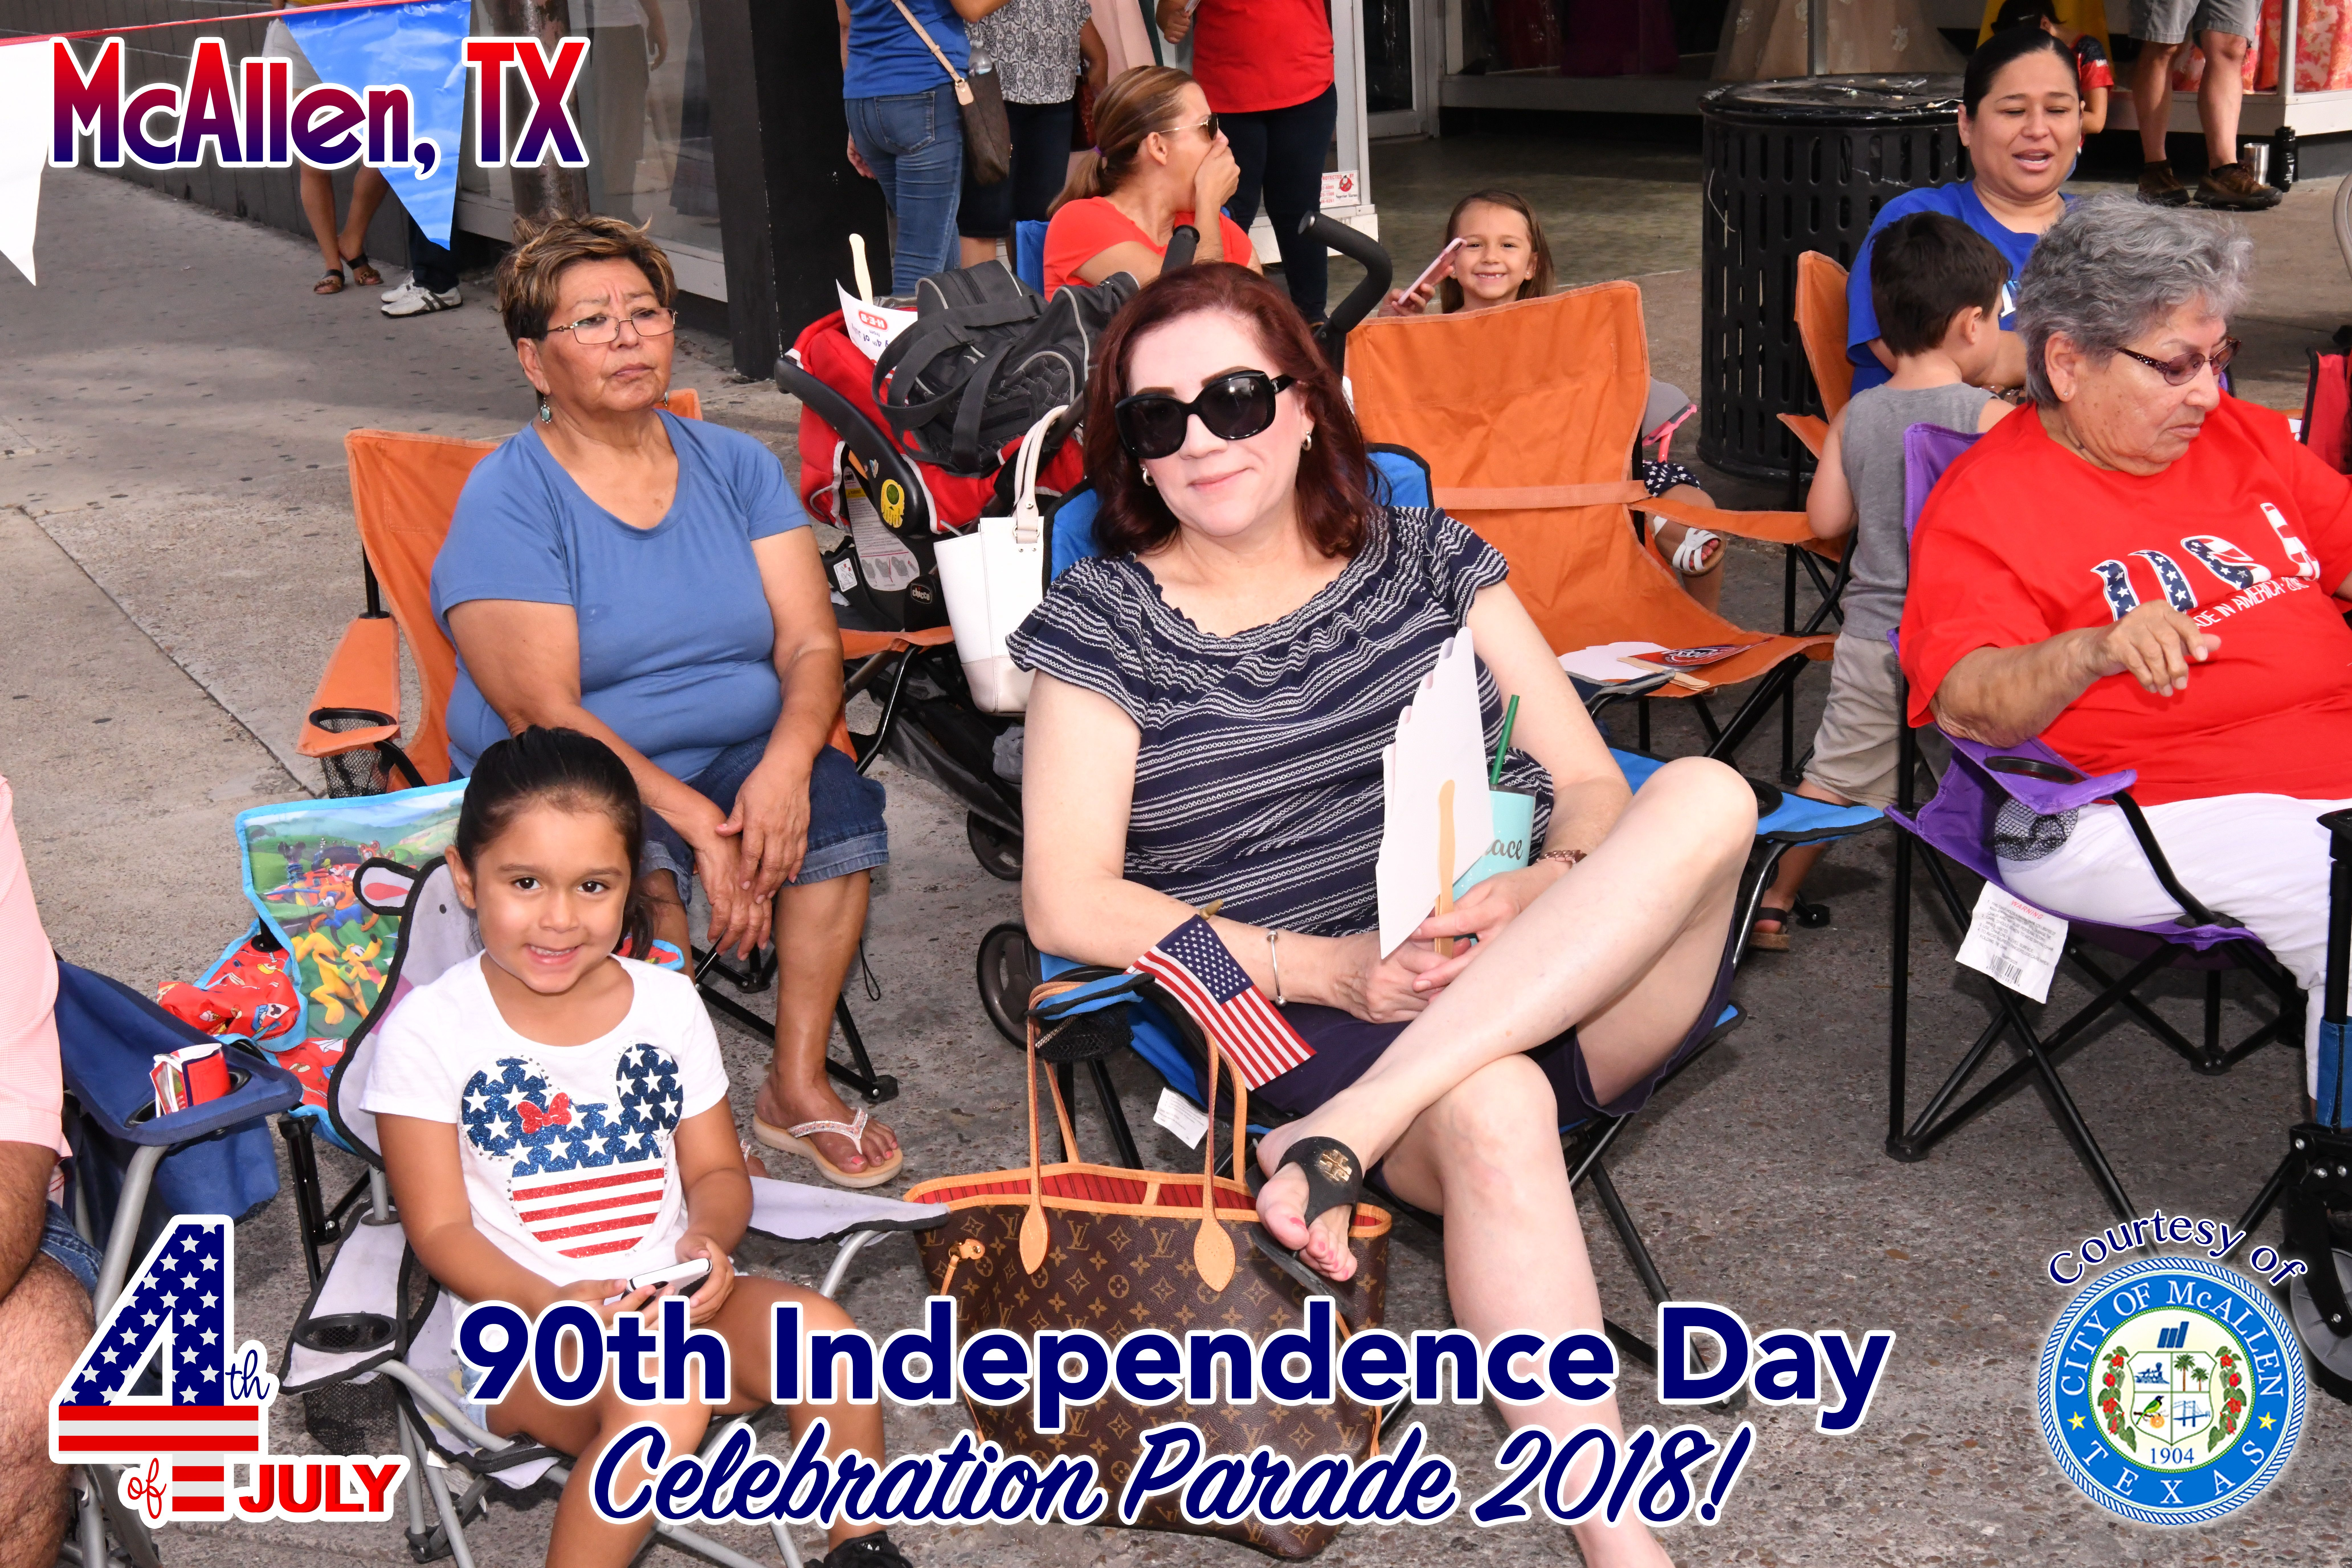 90th McAllen 4th of July Celebration Parade 2018 – Part 8